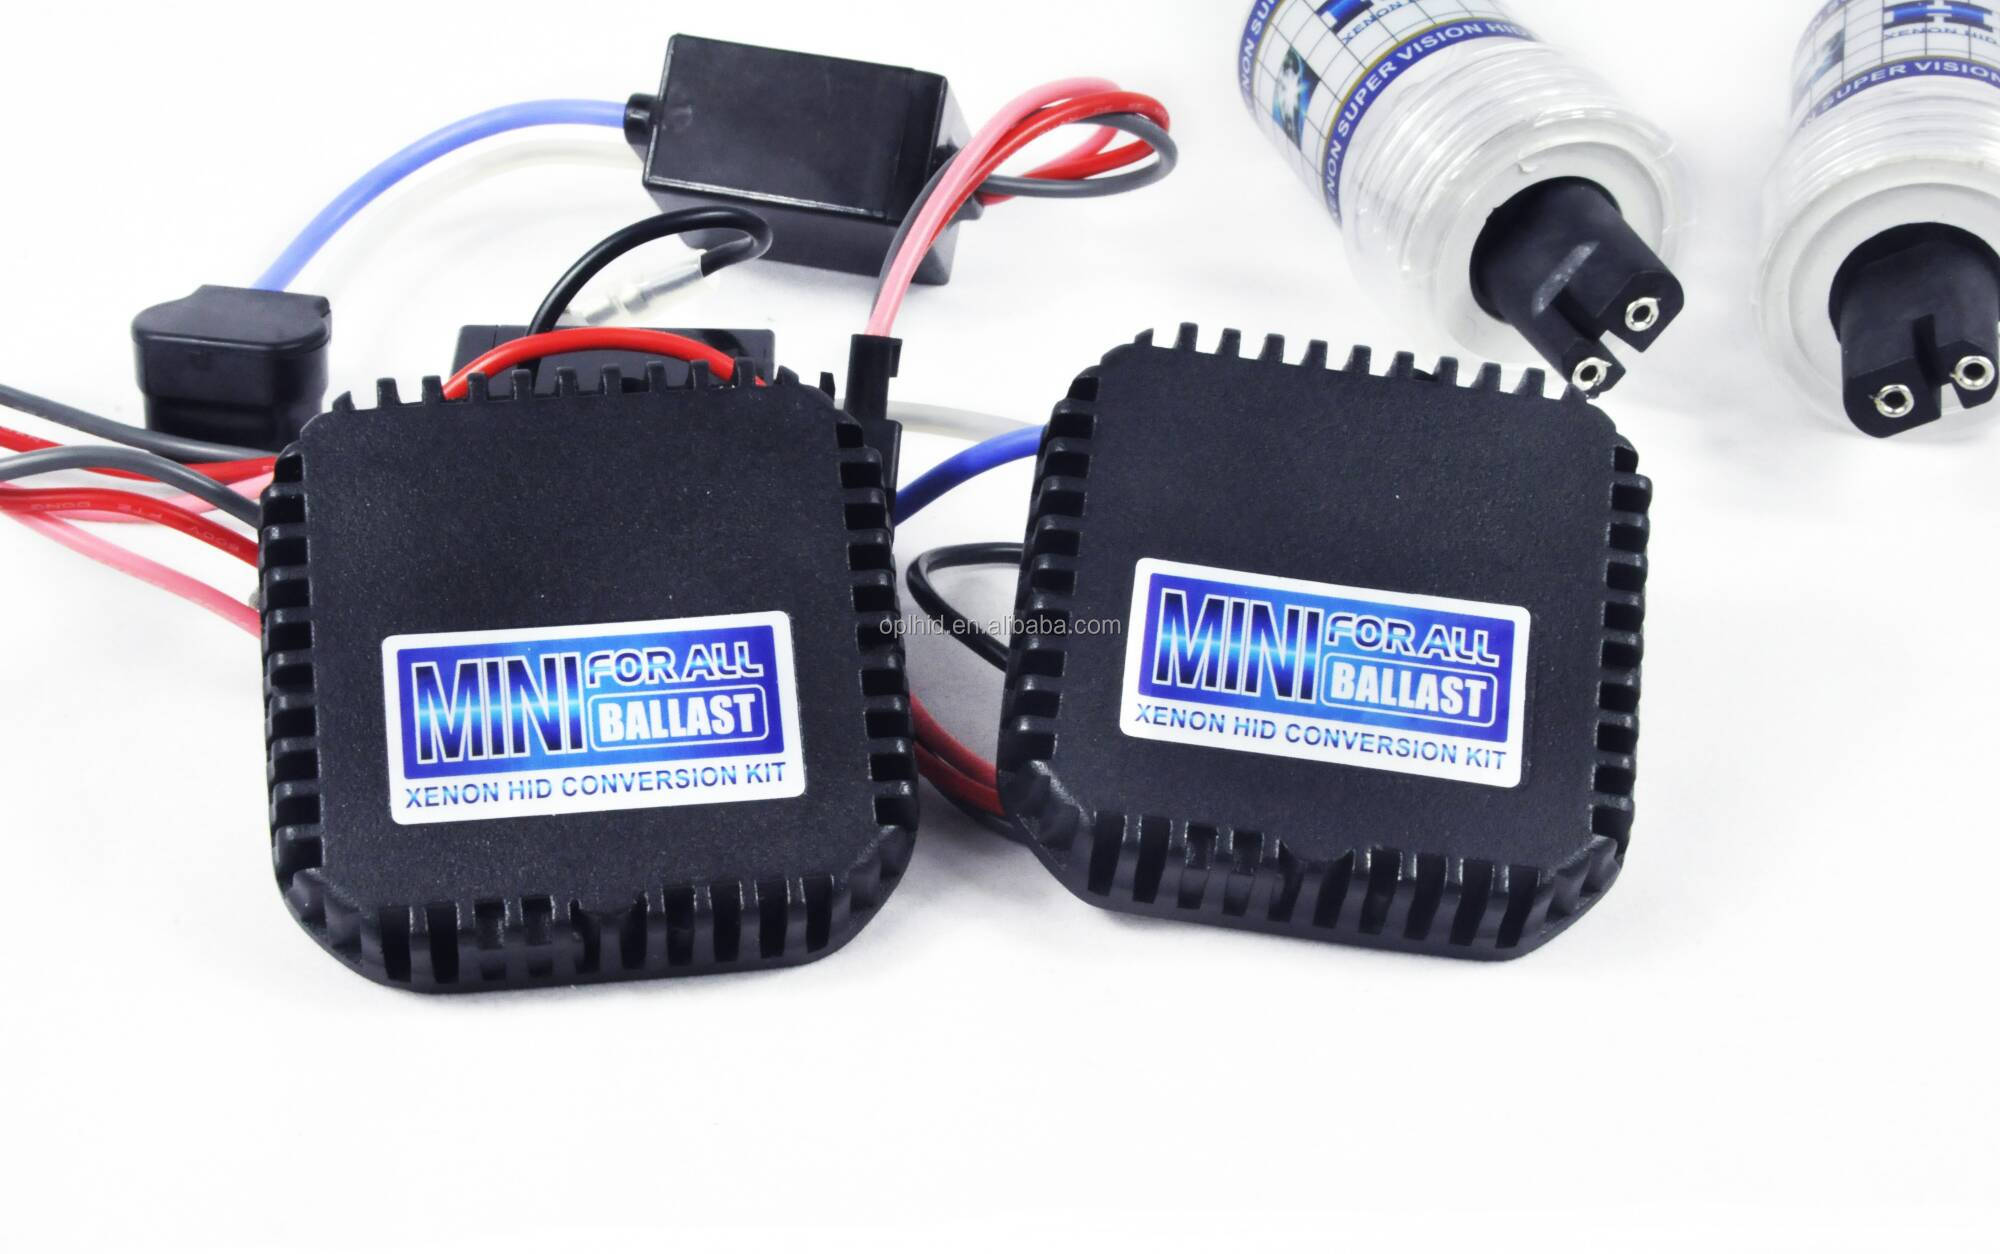 Mini for all in one kit HID conversion kit 55W high quality for all car H1 H3 H4-1 H4-2 H7 H8 H9 H11 9005 9006